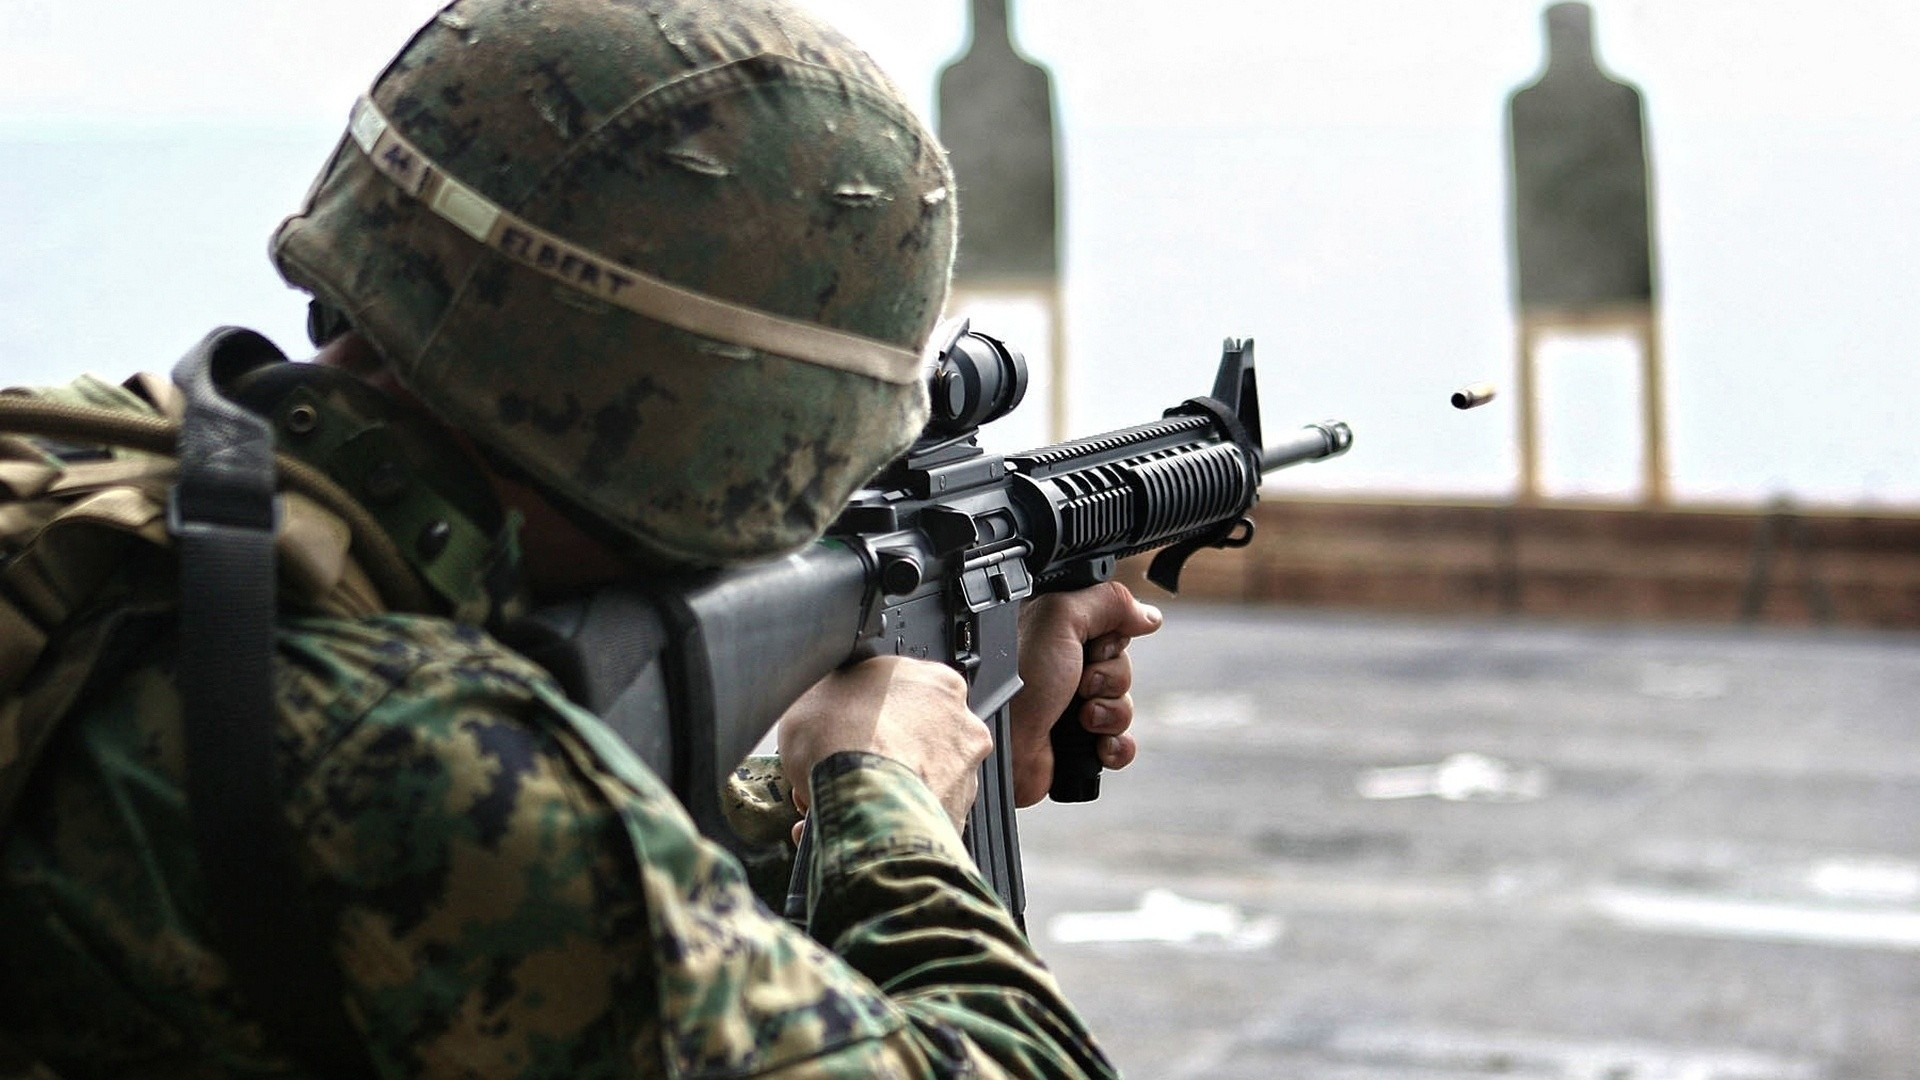 Rifle, Assault, Soldier, Ar-15, Rifle, Weapons, Bullet,